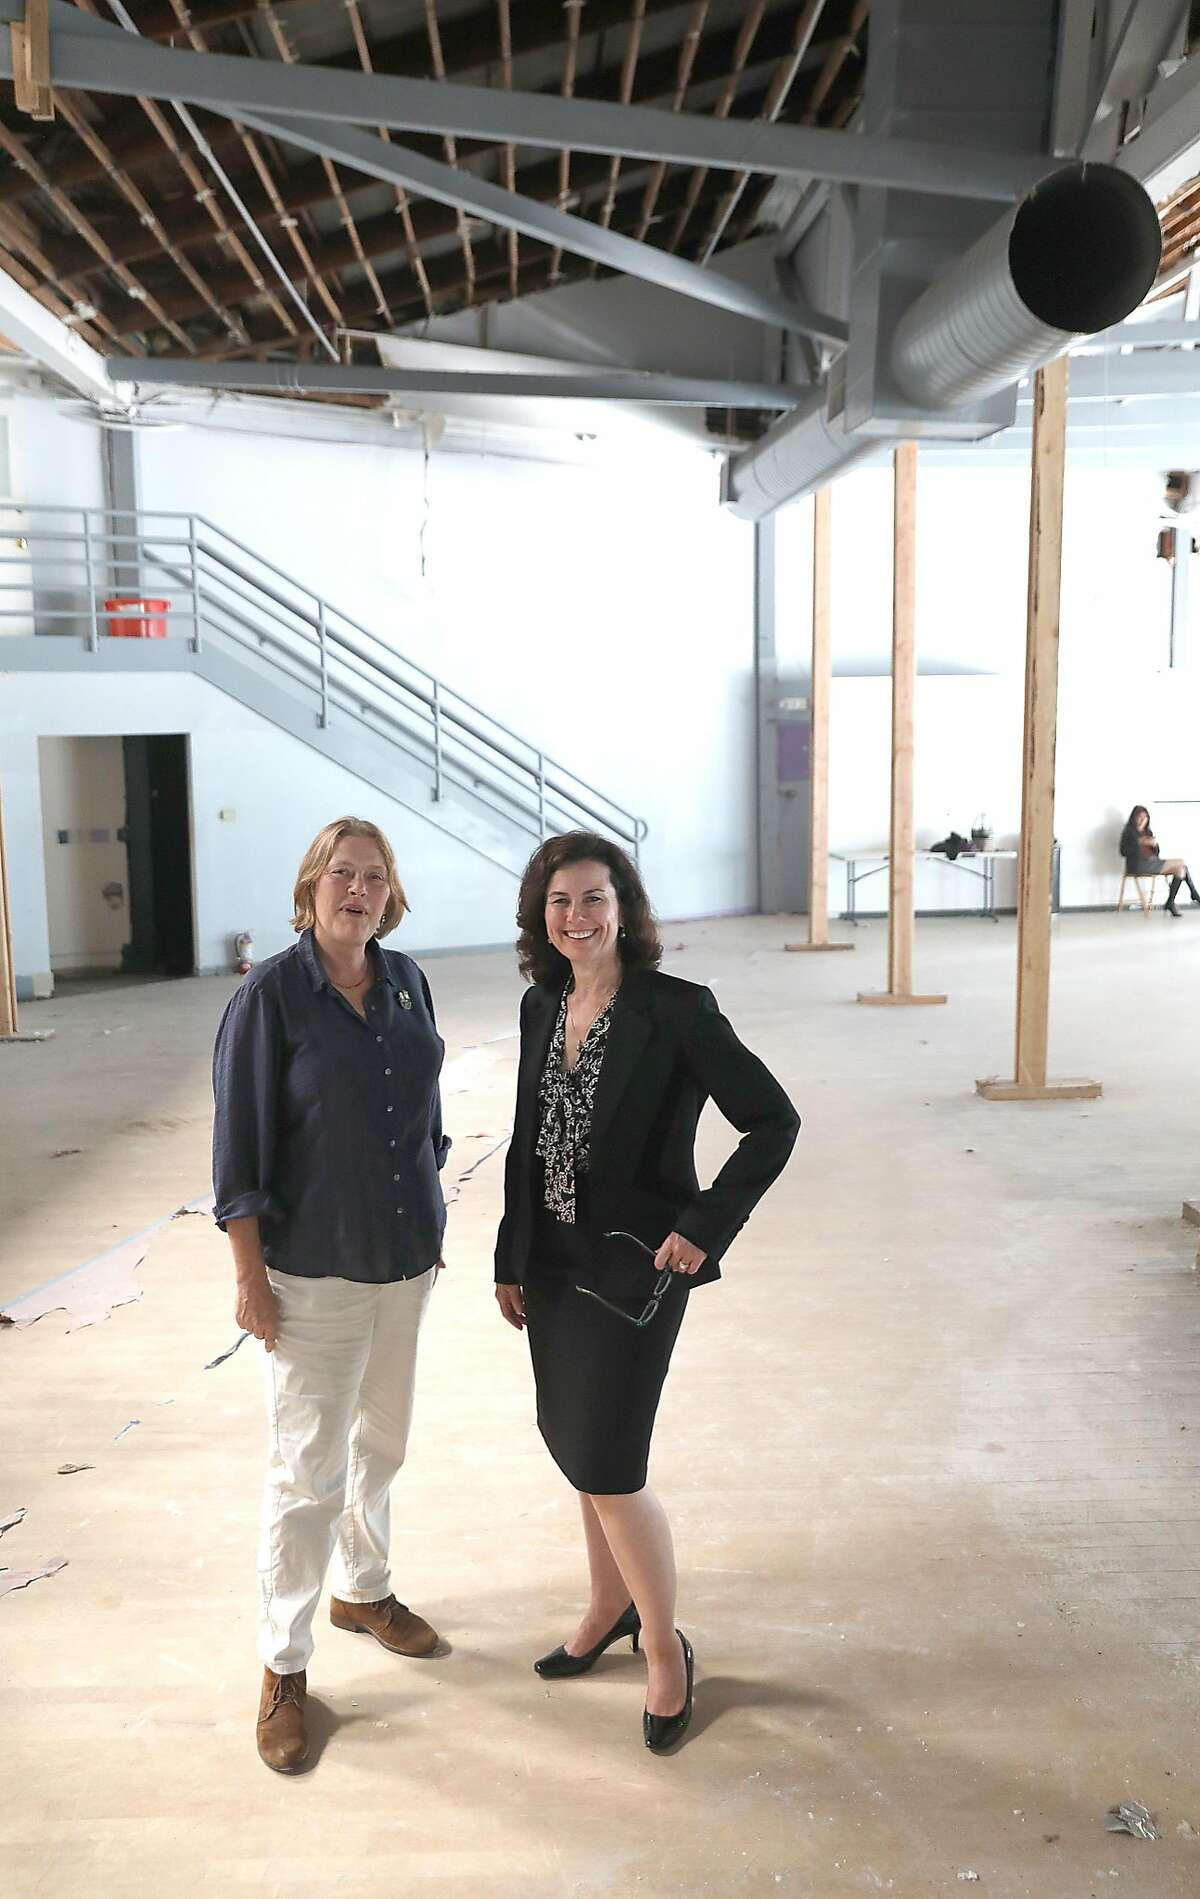 Smuin managing director Lori Laqua (left) and Smuin artistic director Celia Fushille (right) show their new headquarters and dance studio on Tuesday, Aug. 7, 2018 in San Francisco, Calif. Smuin Ballet is celebrating its upcoming 25th anniversary and buying the old Metronome Ballroom on Potrero Hill to convert into its headquarters and dance studio.